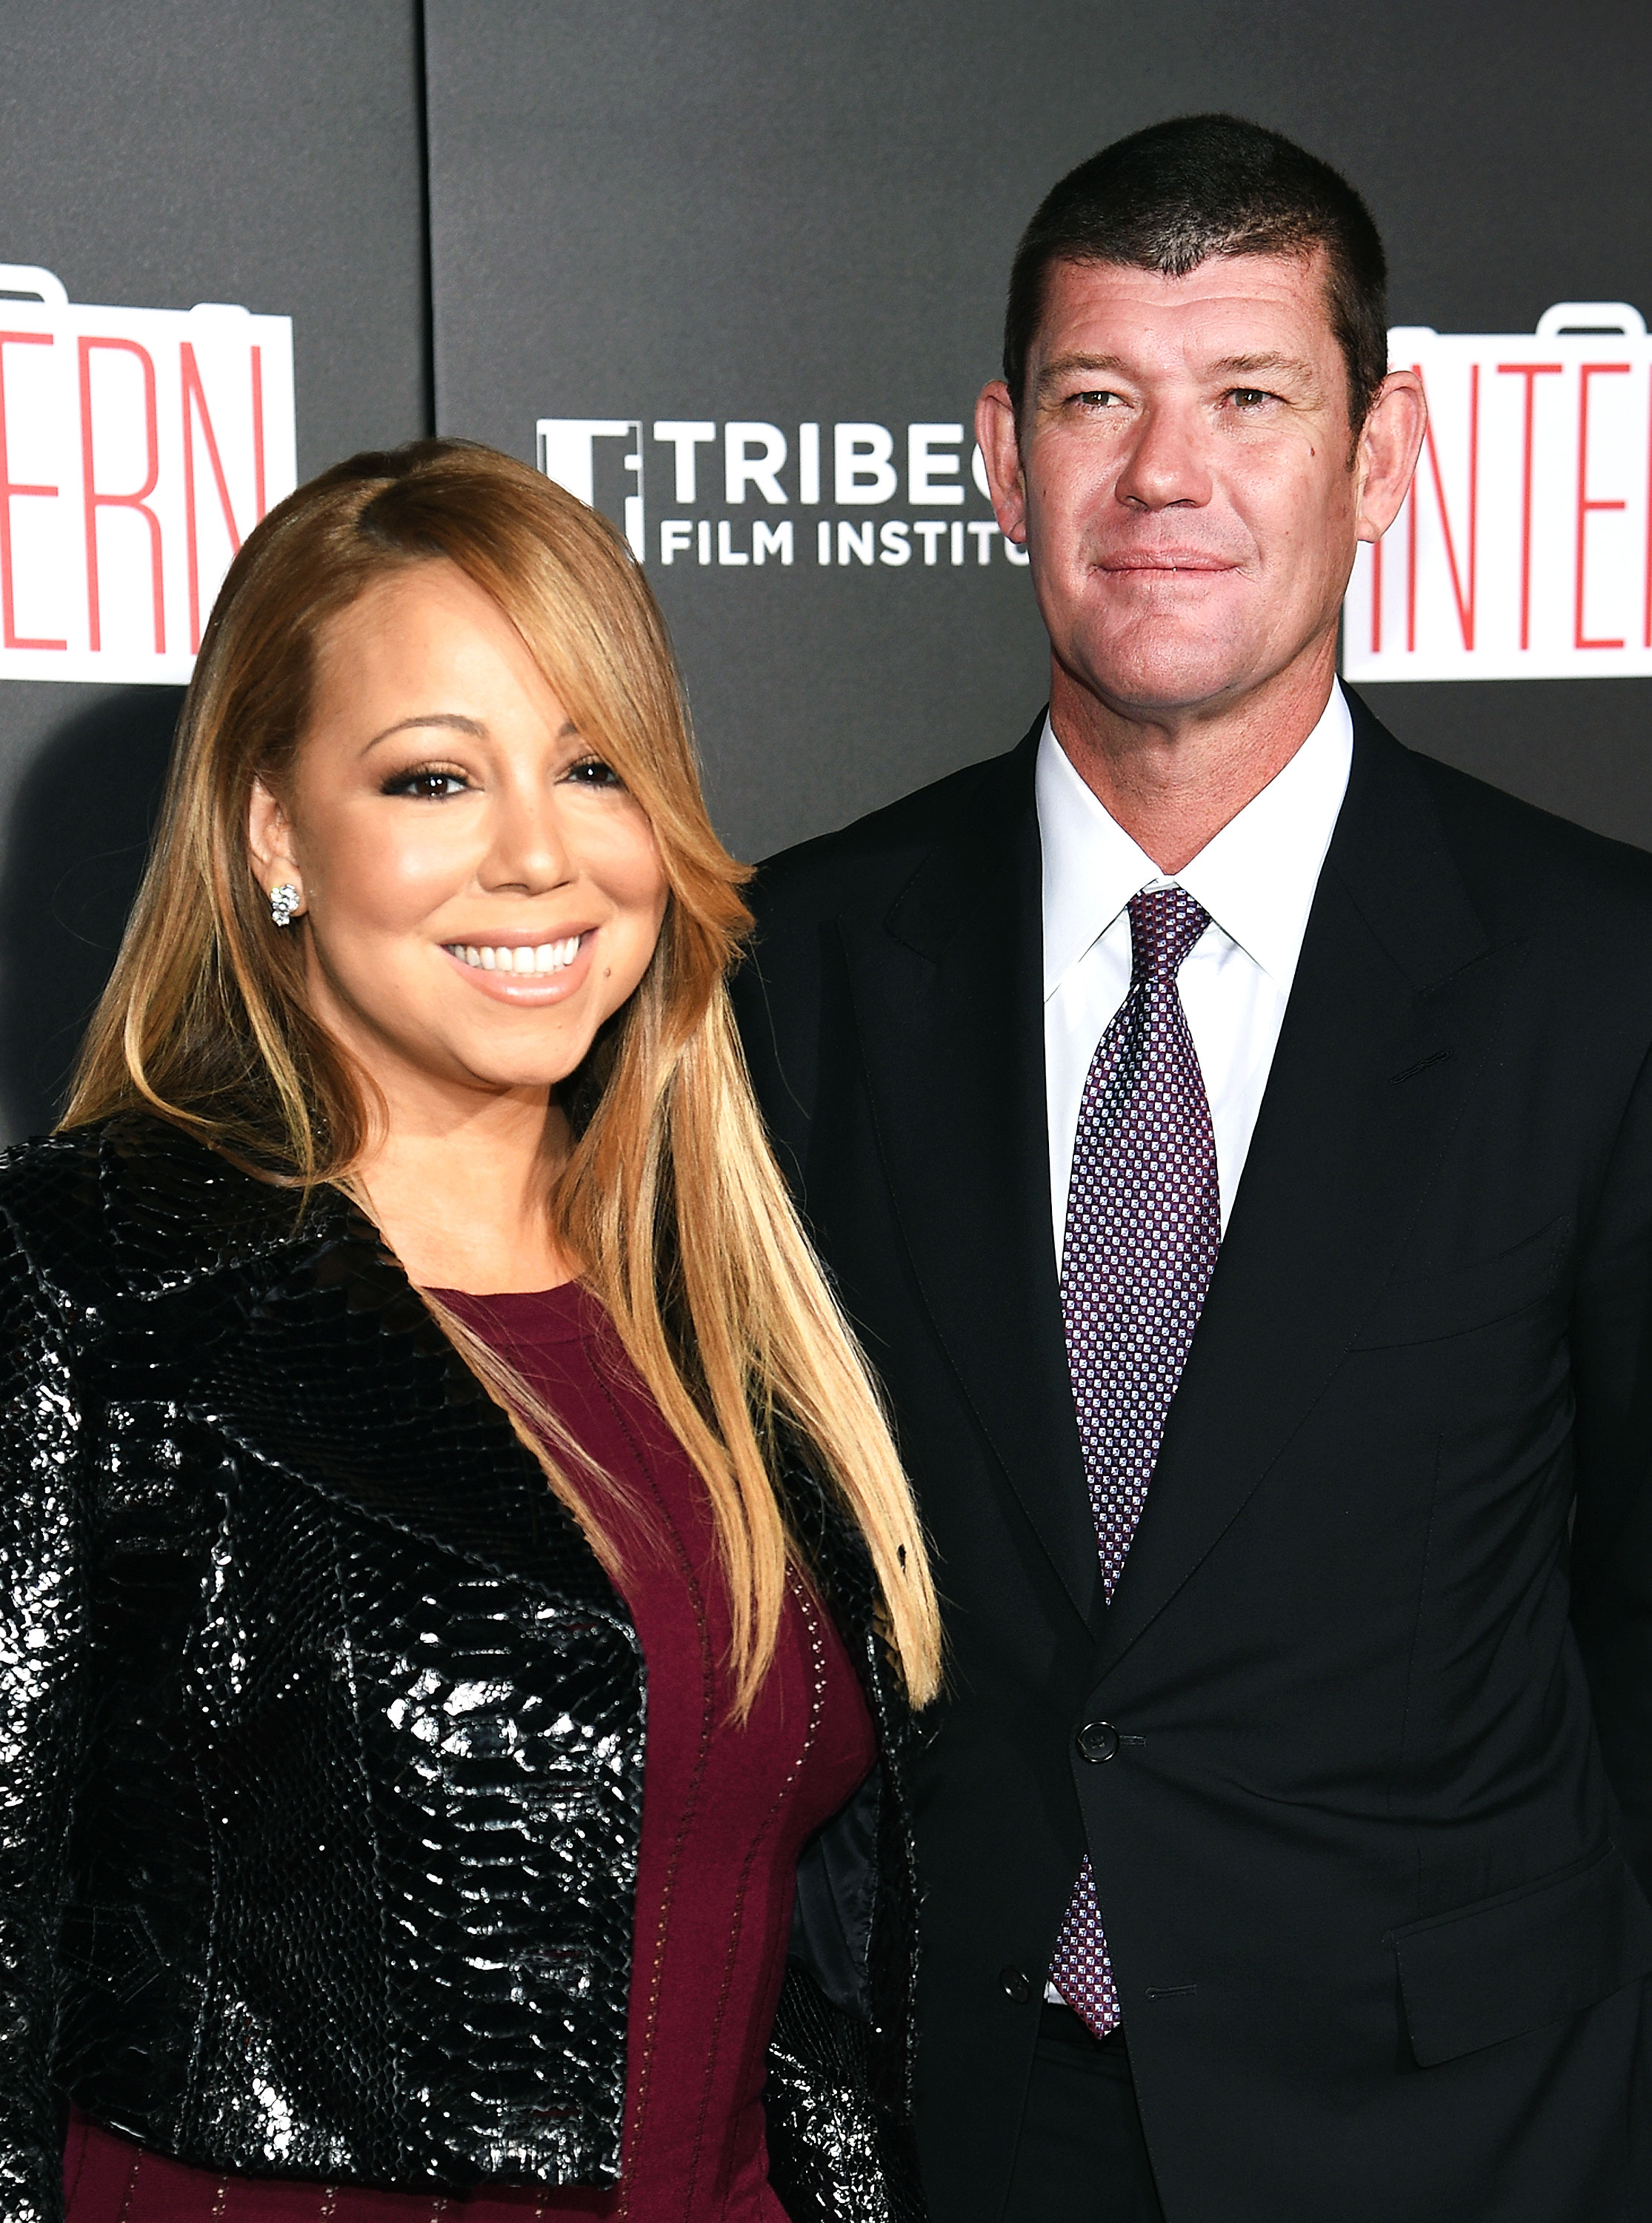 Mariah Carey Can Keep Her Engagement Ring After James Packer Split